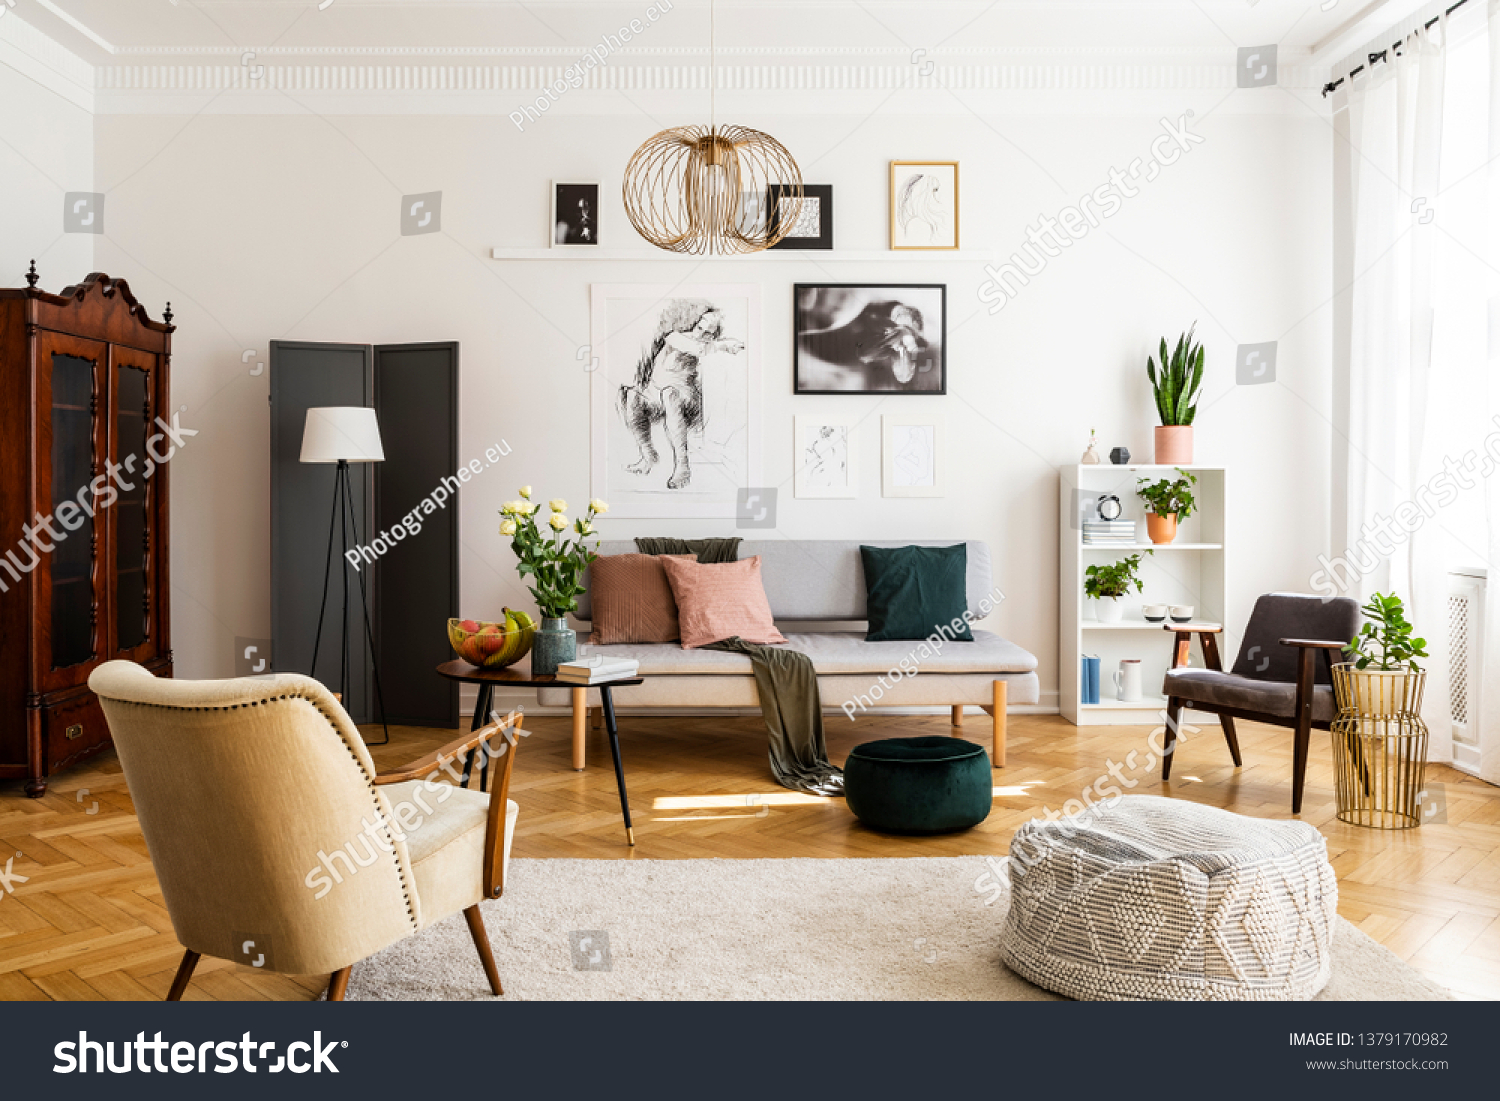 Stylish beige armchair and pouf on the cozy carpet in classy living room interior with grey settee and vintage furniture #1379170982